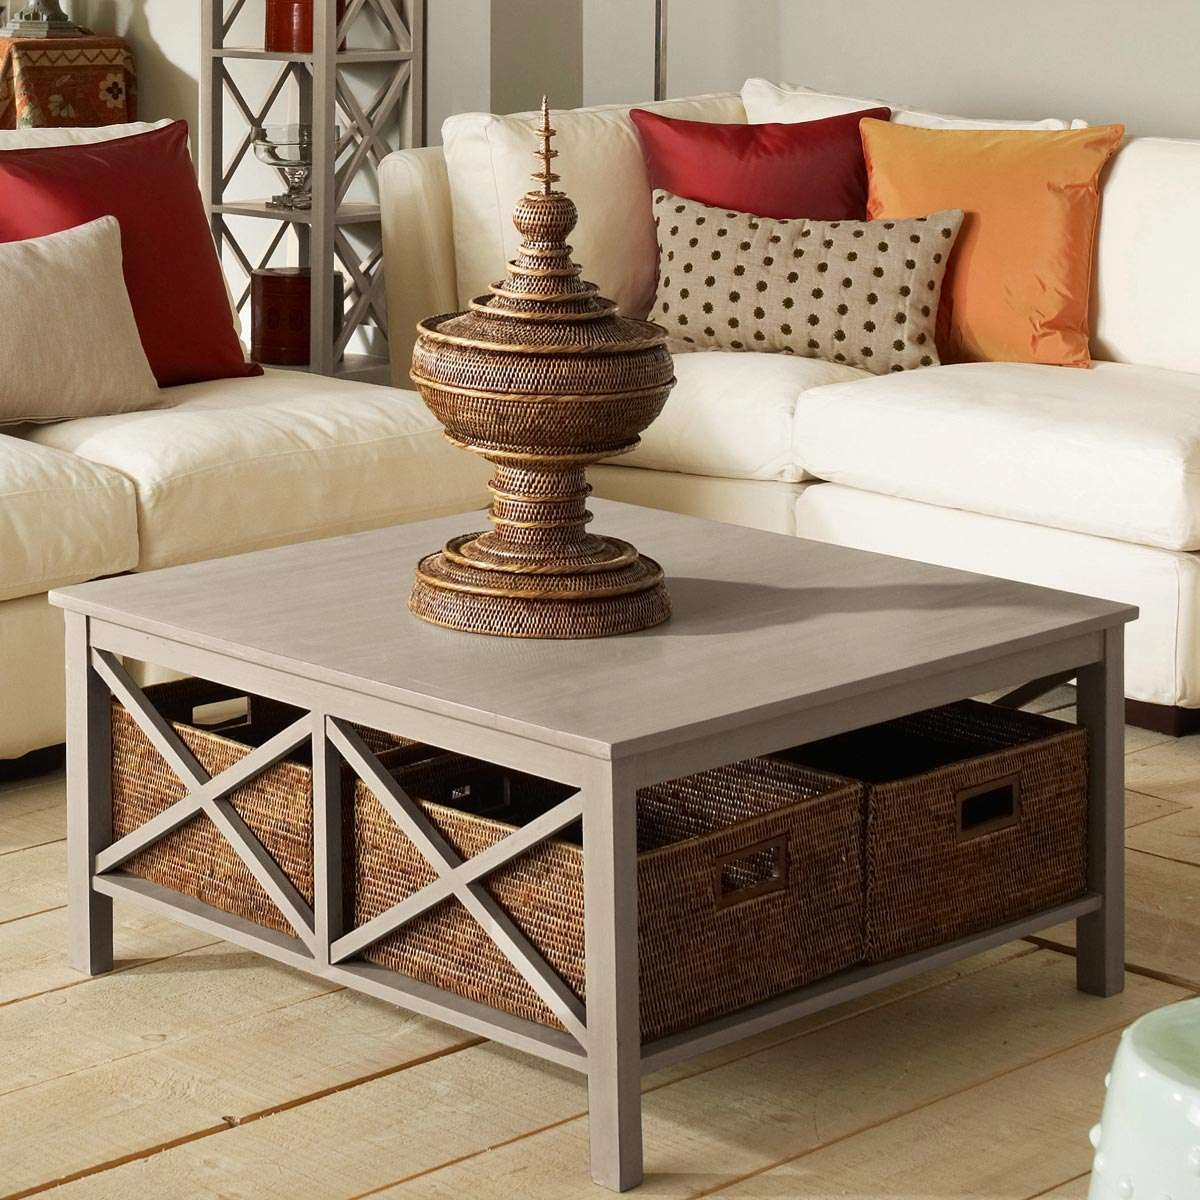 Ingenious Ways You Can Do With Coffee Table With Storage Baskets Inside Well Known Coffee Tables With Baskets Underneath (View 7 of 20)